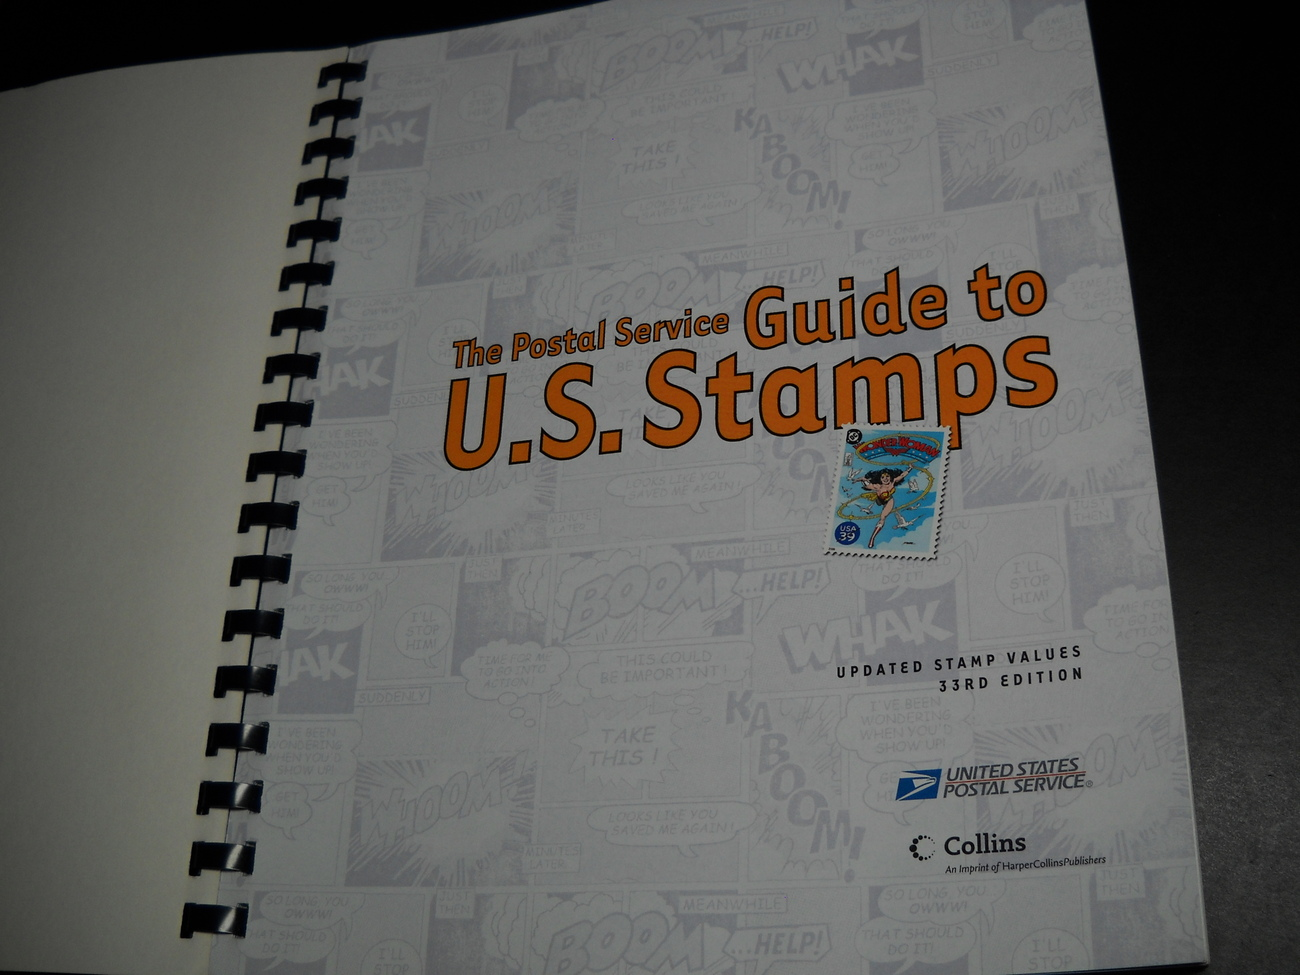 Postal Service Guide to US Stamps 33rd Edition 2006 Harper Collins Softcover